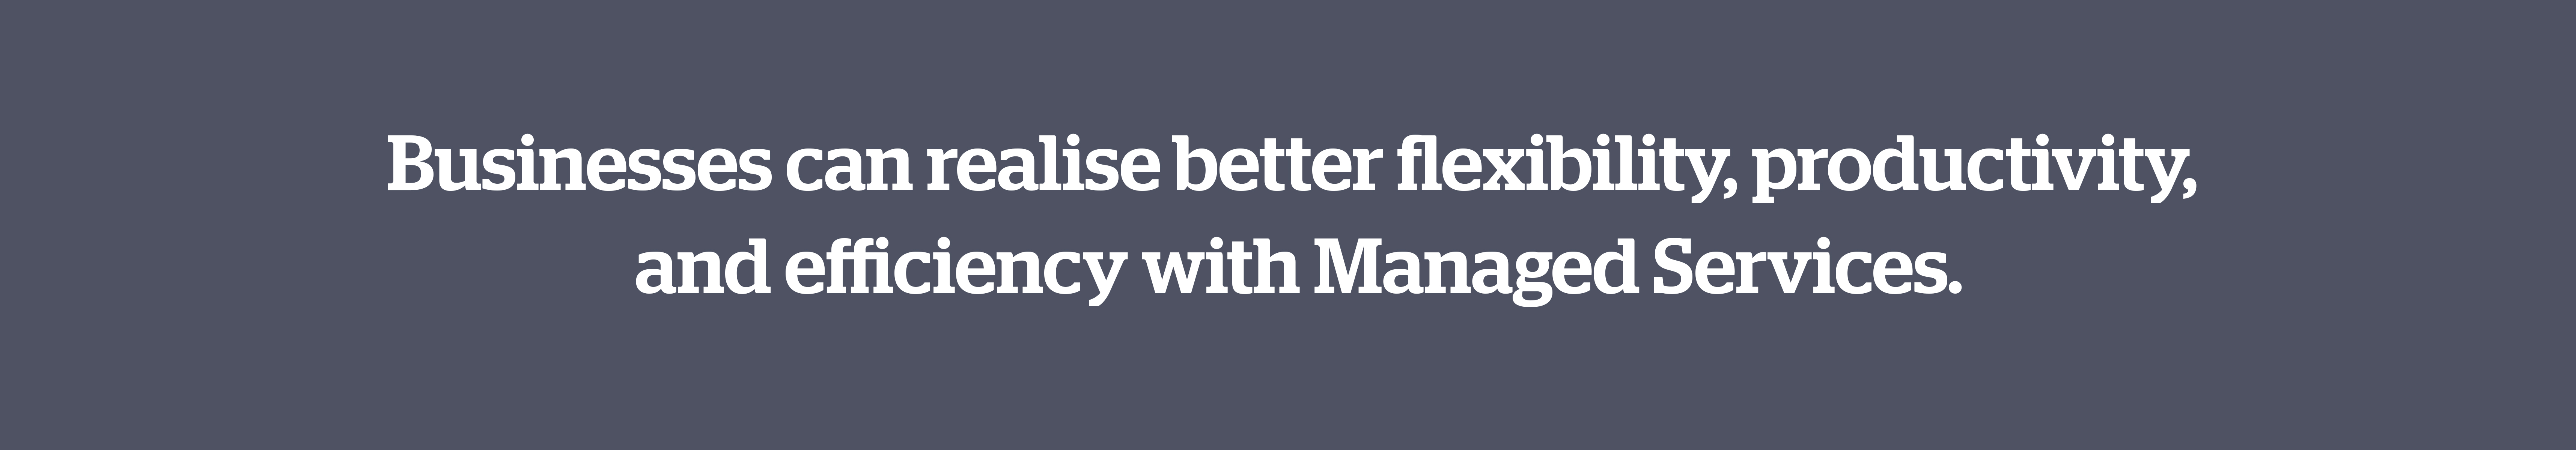 managed services_quotes_banner